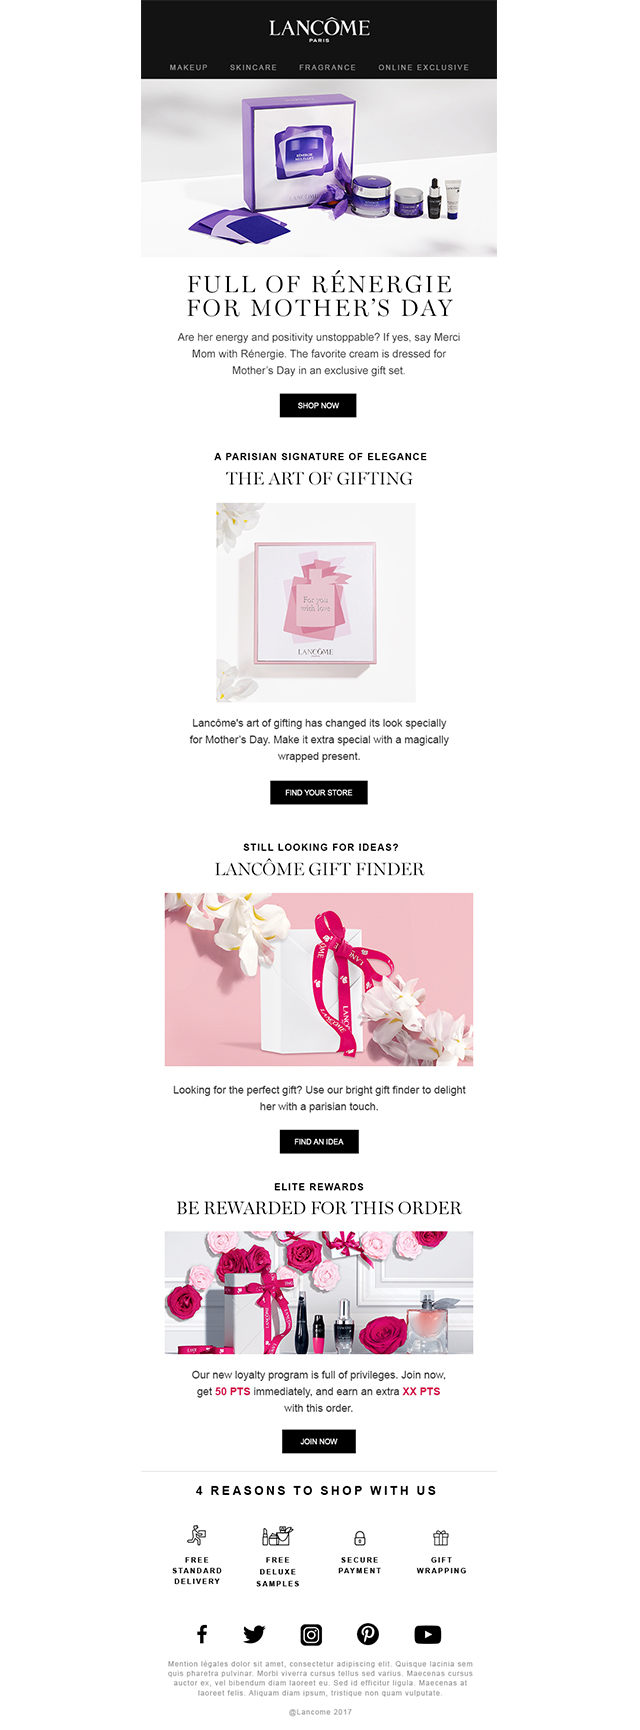 Newsletter lancement mother's day